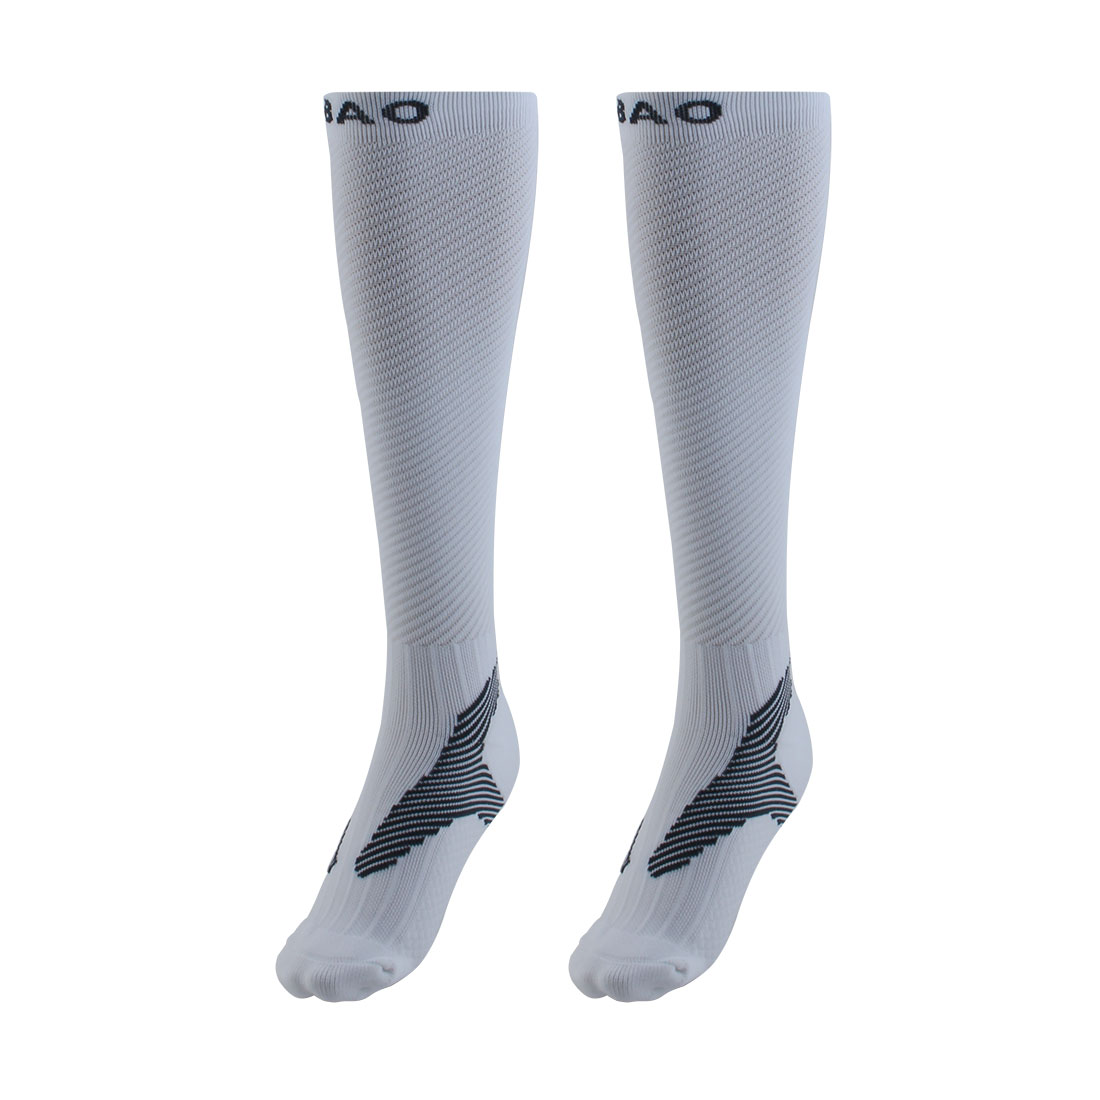 R-BAO Authorized Bicycle Jogging Mountain Bike Cotton Blend Breathable Sports Cycling Socks White L